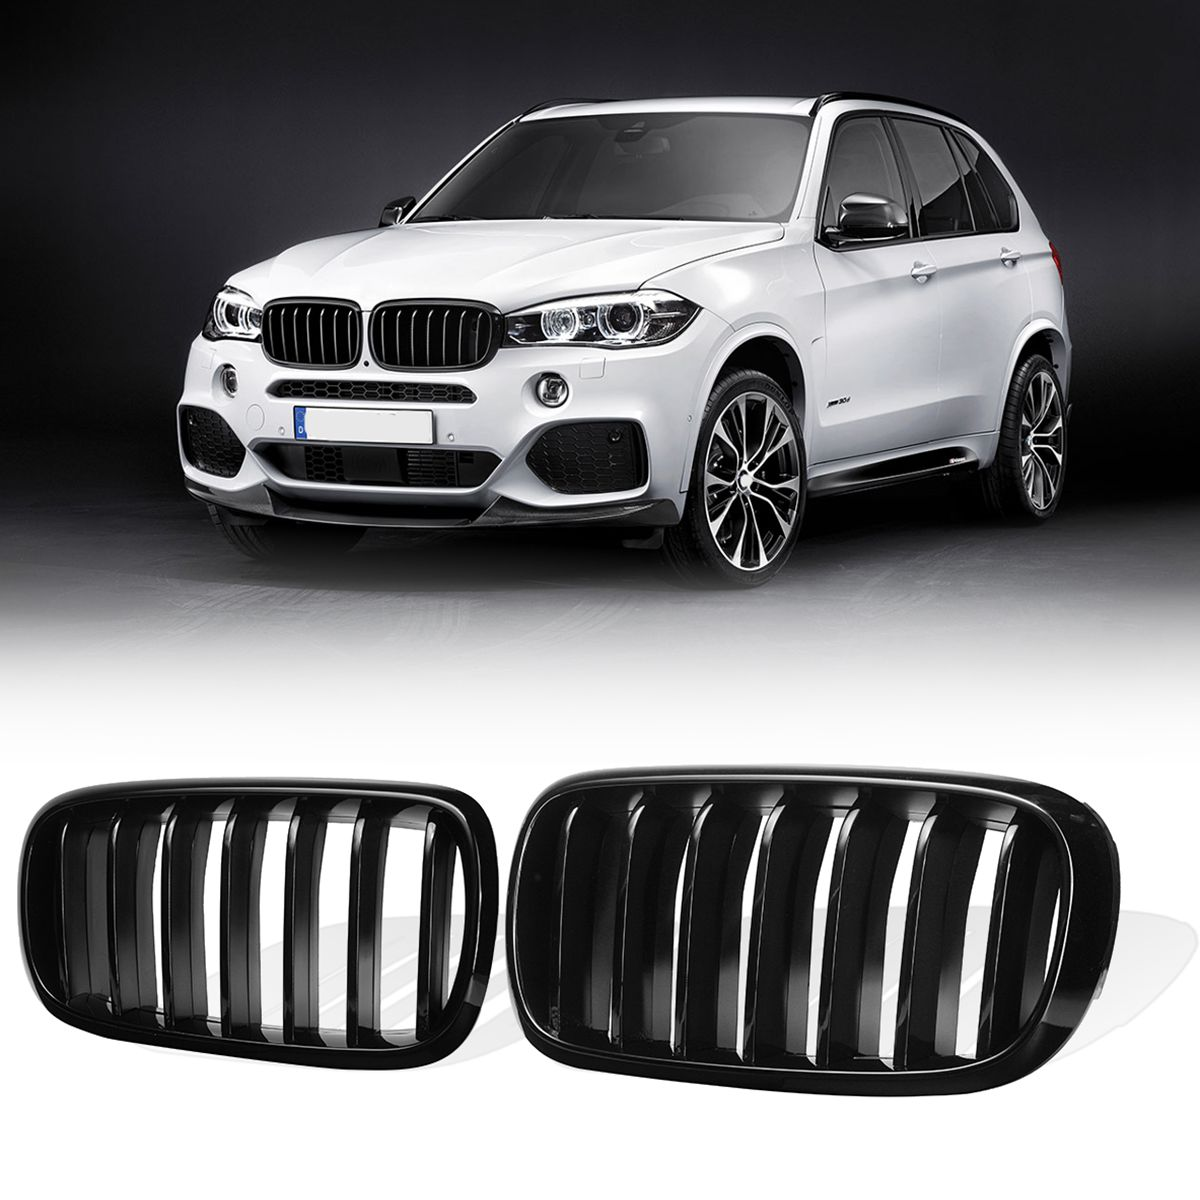 1 Pair Glossy Black Matte Black M Style Front Bumper Kidney Grill Grilles For BMW X5 F15 X6 F16 2014 2015 2016 2017 2018 x5 x6 m performance sport design m color front grill dual slat kidney custom auto grille fit for bmw 2015 2016 f15 f16 suv